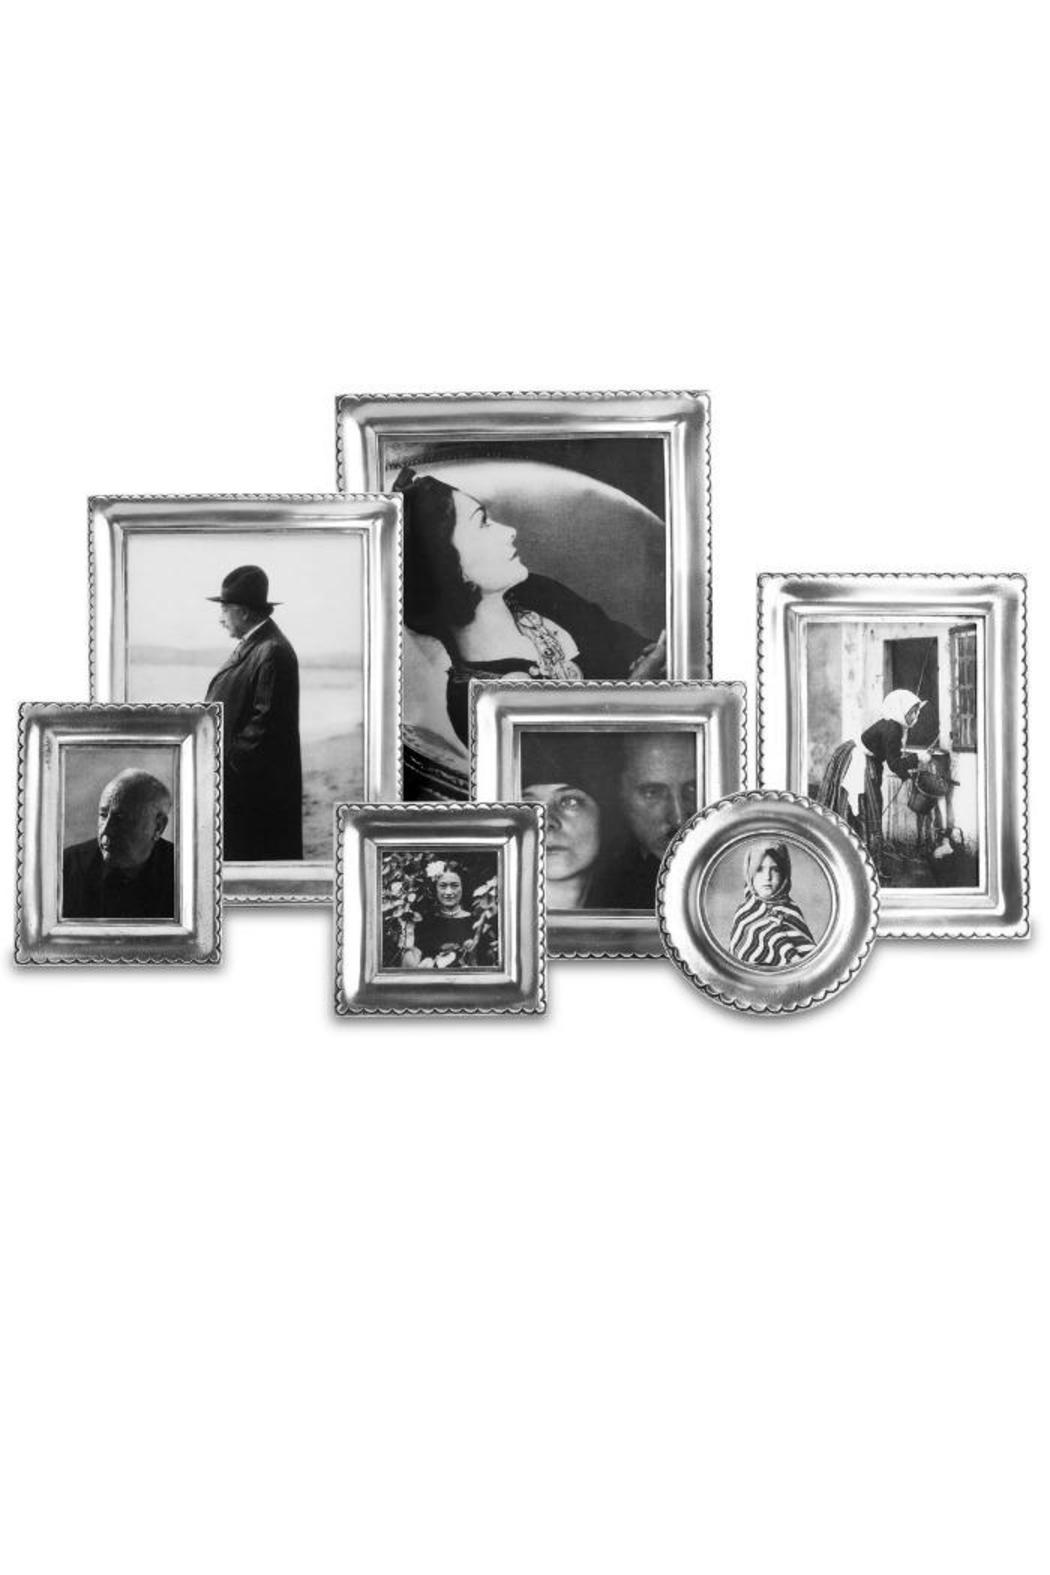 Match Pewter Pewter Trentino Frame-4x6 from Seattle by STUHLBERGS ...